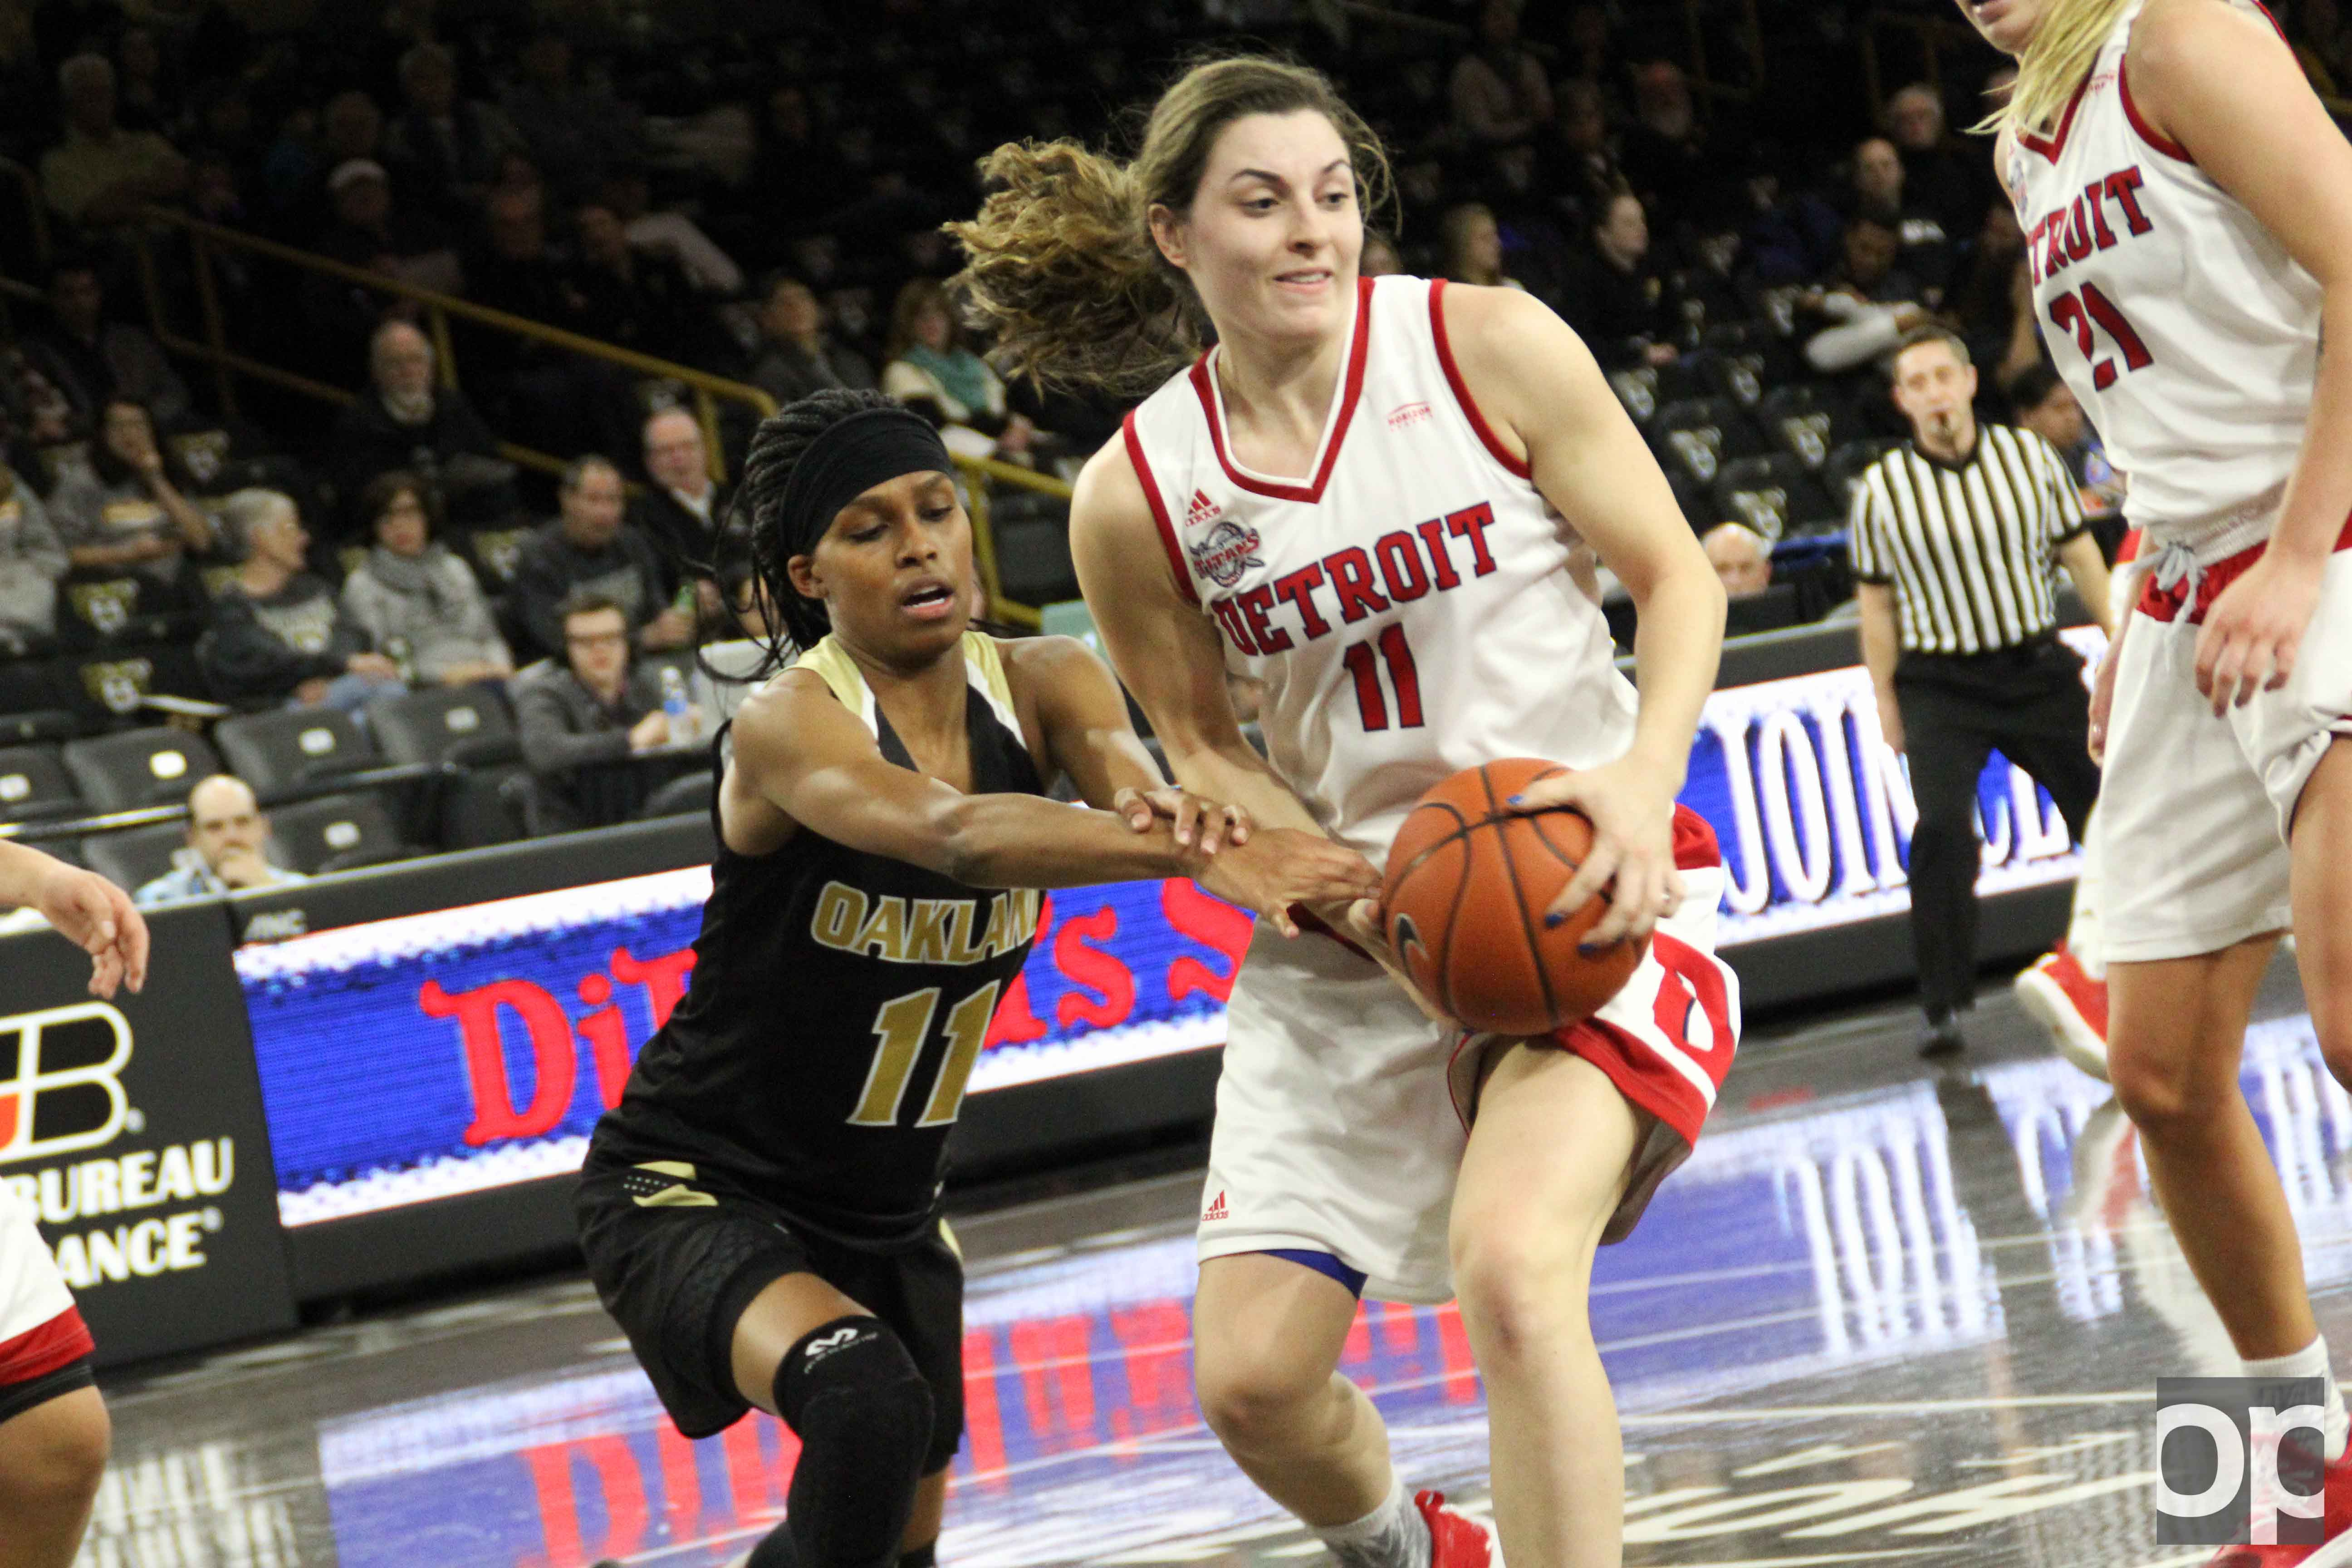 With 32 points from Rosanna Reynolds (#11), University of Detroit-Mercy beat Oakland 80-71 on Saturday, Jan. 7 at the O'rena.